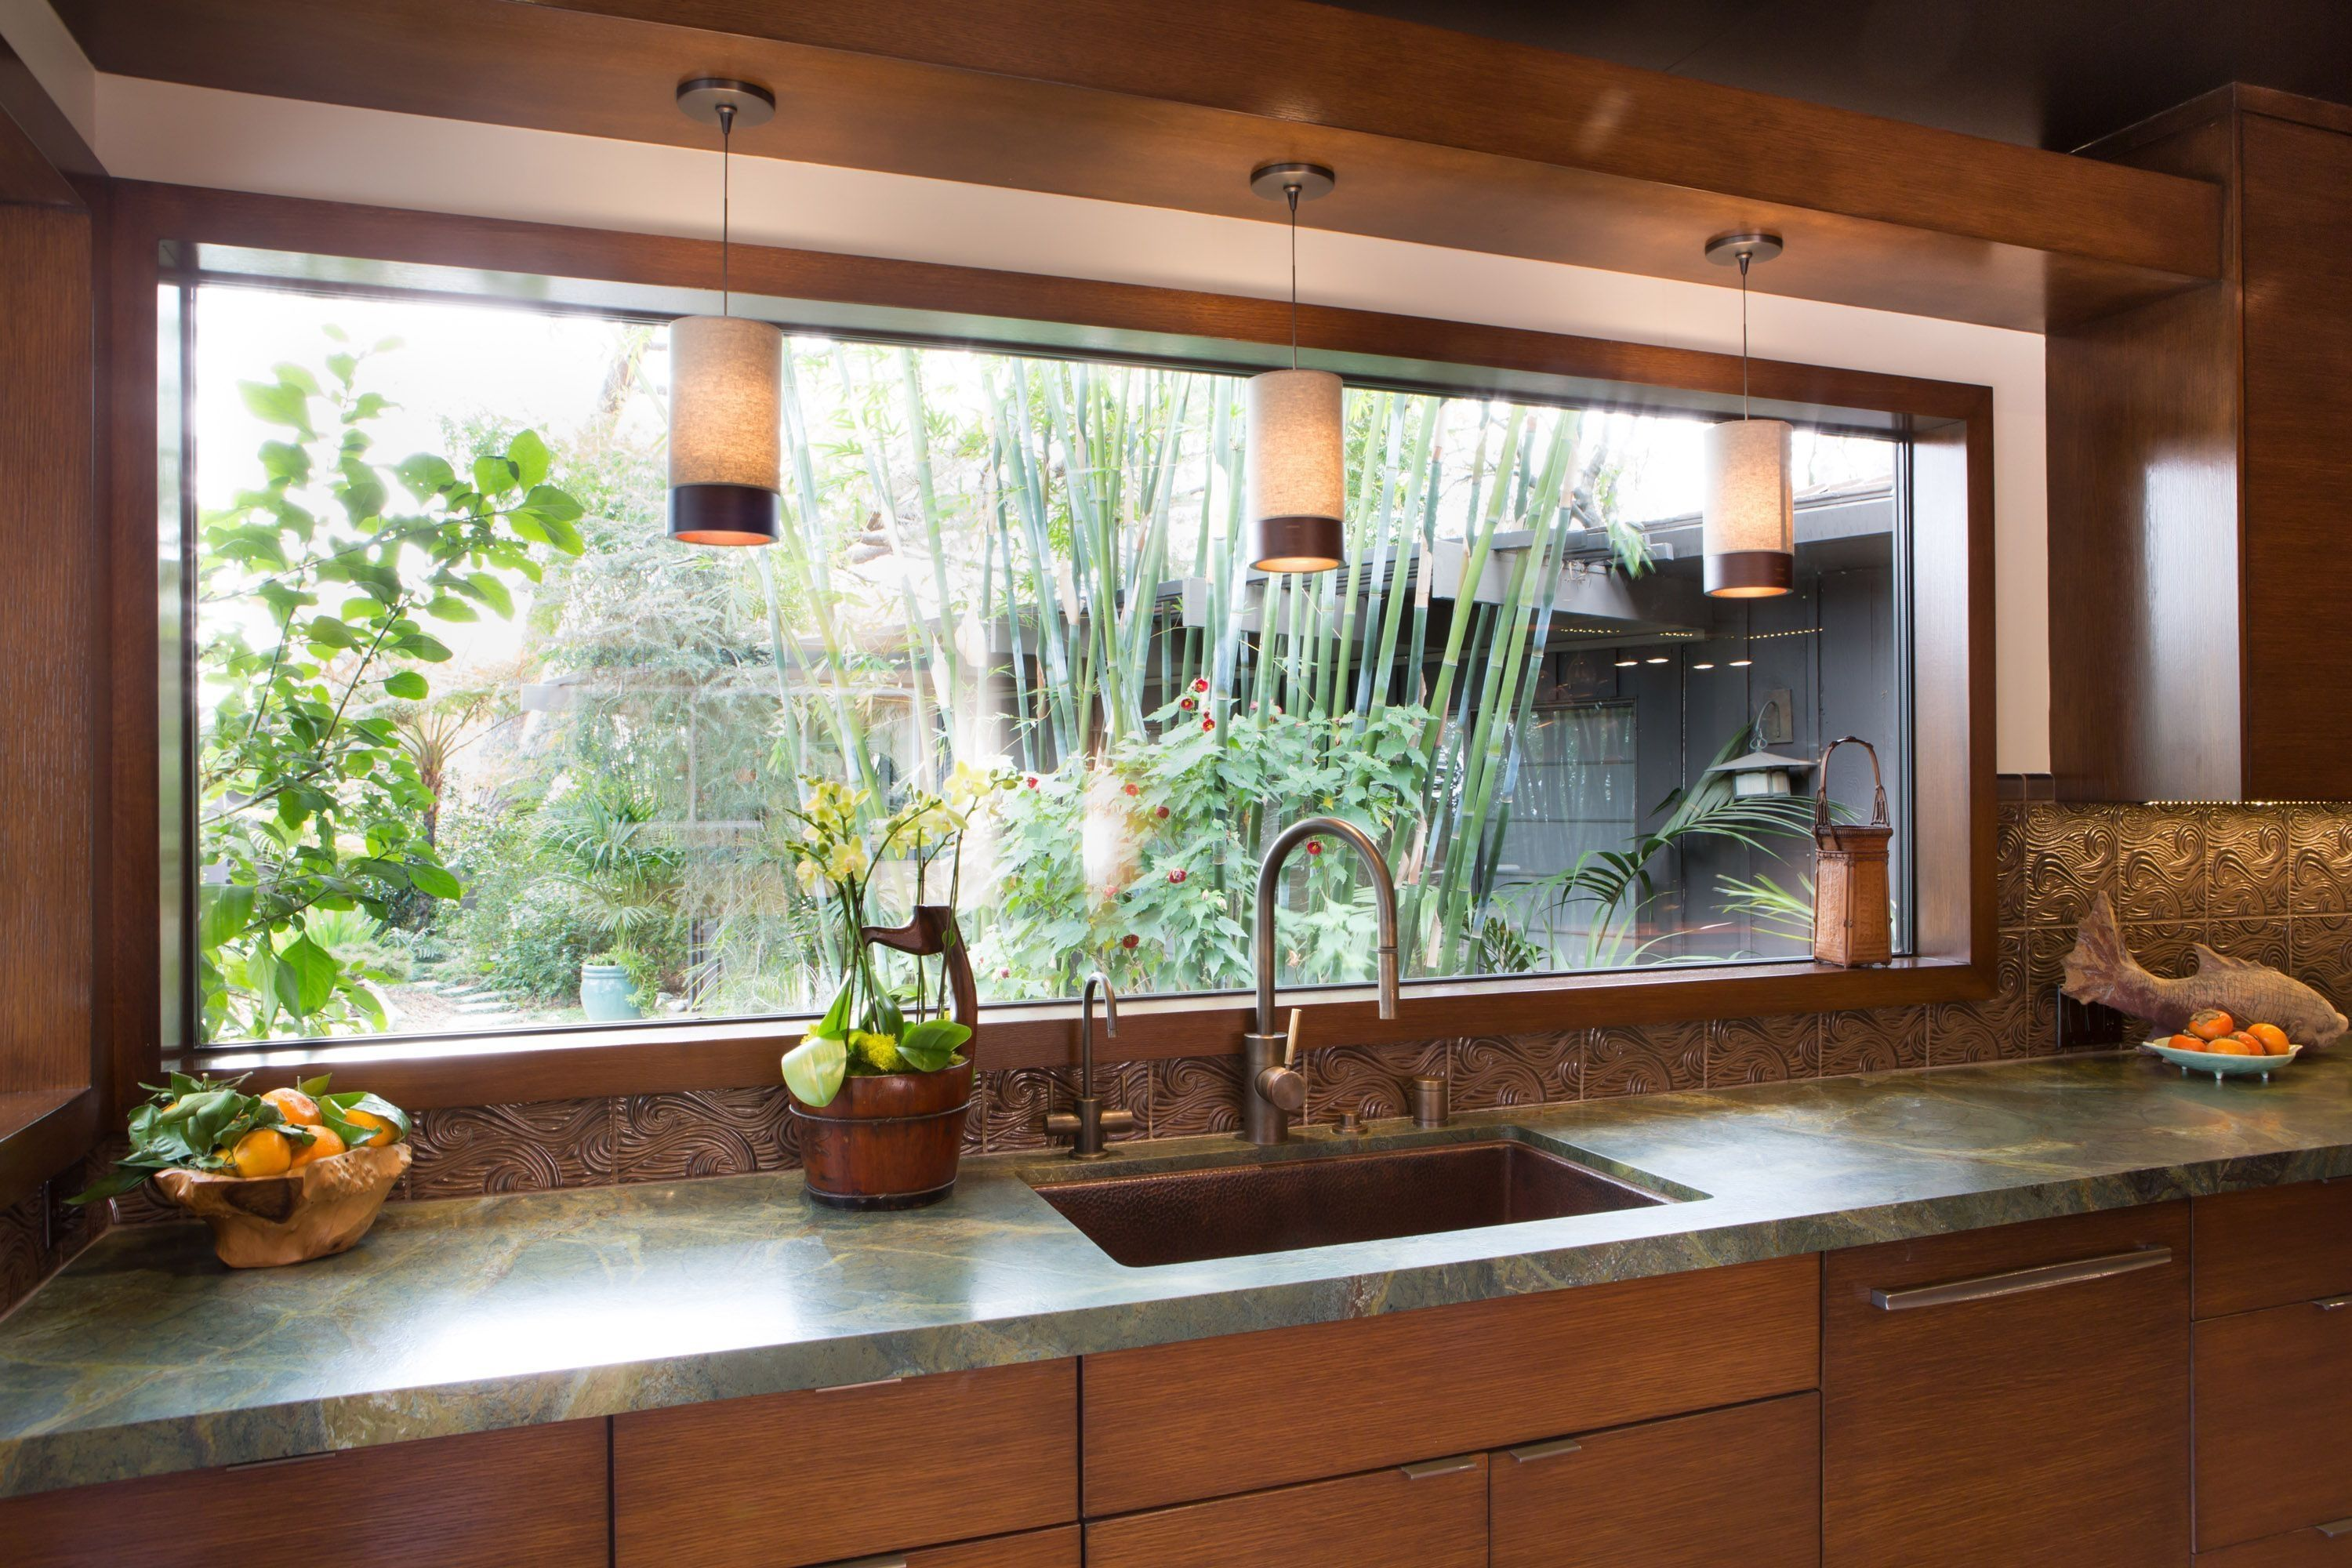 30 best contemporary japanese kitchens design ideas kitchen interior modern kitchen on kitchen organization japanese id=98243